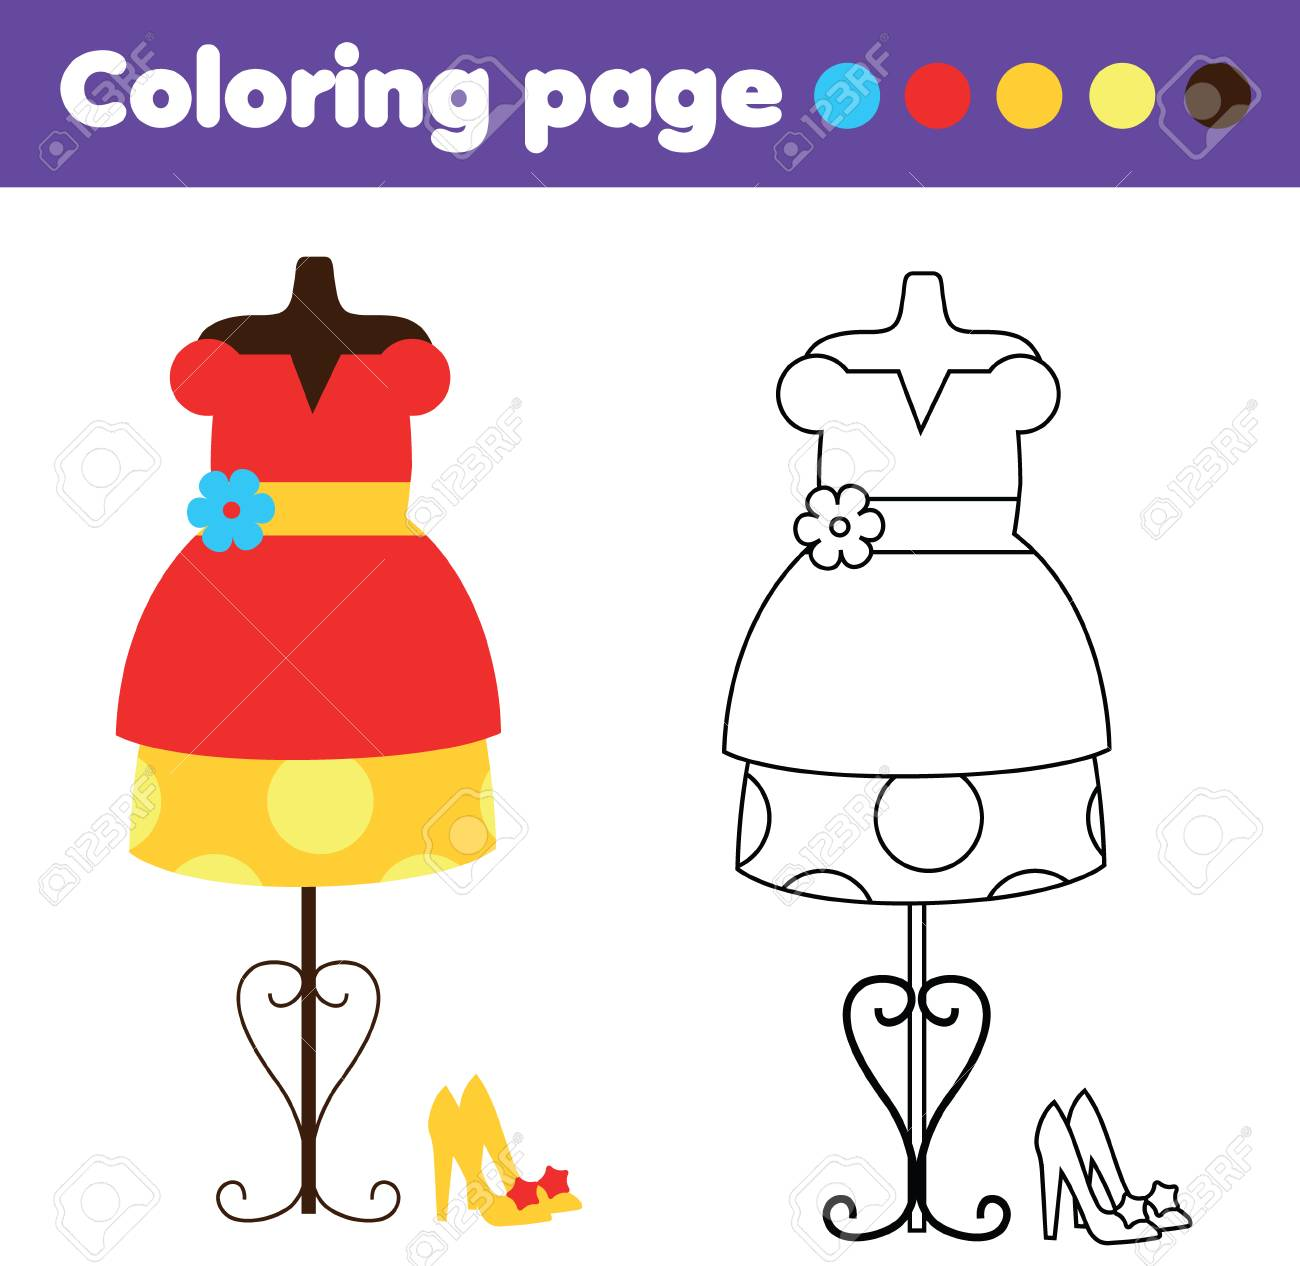 Coloring page with fashionable dress and shoes. Color the picture